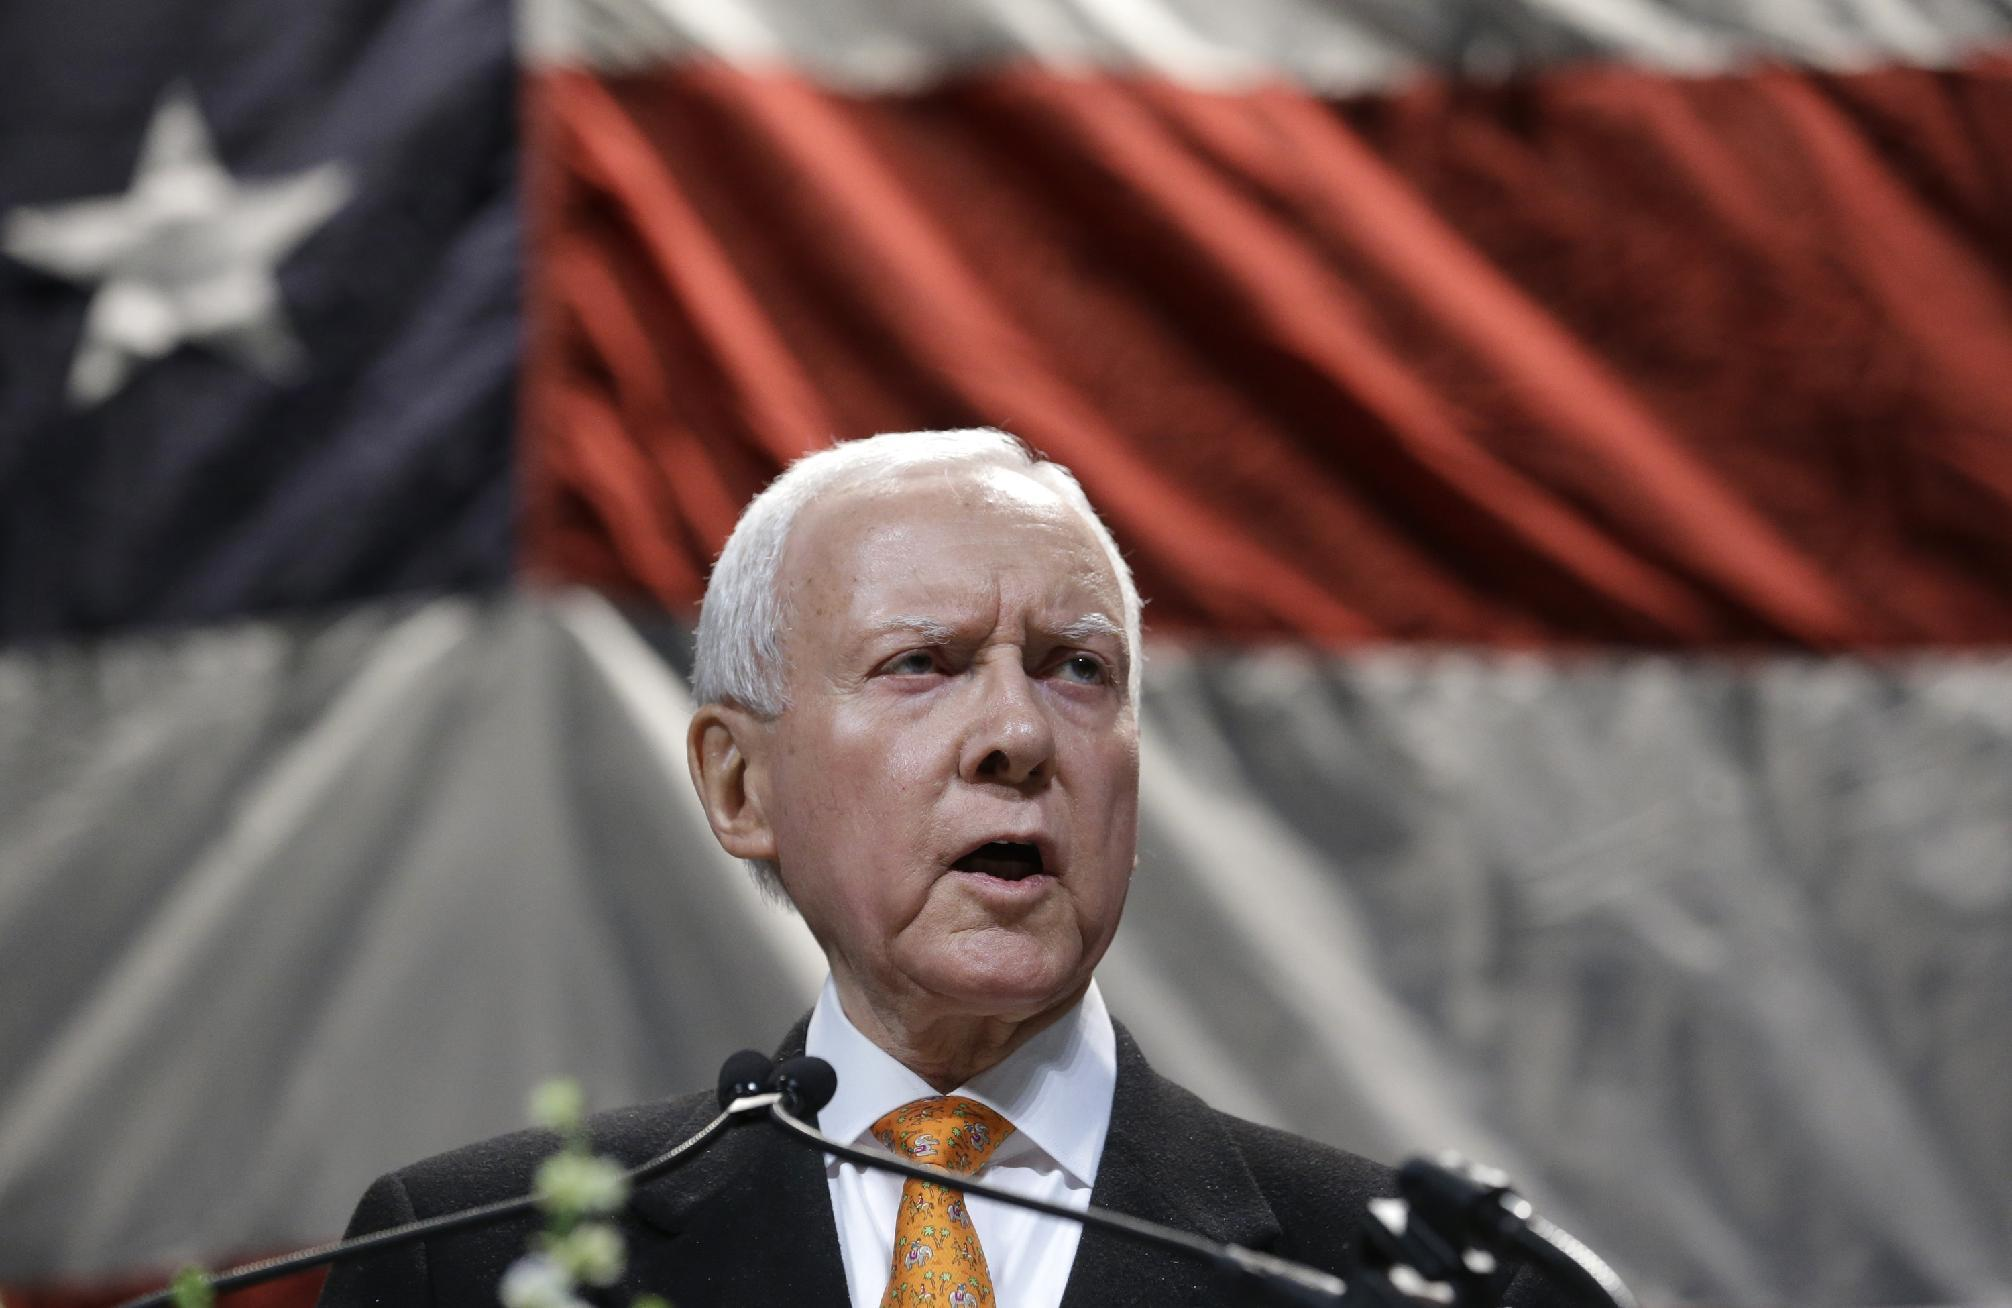 """U.S. Sen. Orrin Hatch addresses the Utah Republican Party's annual organizing convention Saturday, May 18, 2013, in Sandy, Utah. Hatch says staffers at the Internal Revenue Service, which recently apologized for unfairly targeting tea party groups, """"are either deliberately incompetent or they are evil."""" Hatch mentioned the IRS scandal while addressing thousands of fellow Republicans in Sandy on Saturday for the state party's annual organizing convention. Hatch says the IRS scandal is more concerning than almost anything else he's seen in the 36 years he's been in the U.S. Senate. (AP Photo/Rick Bowmer)"""